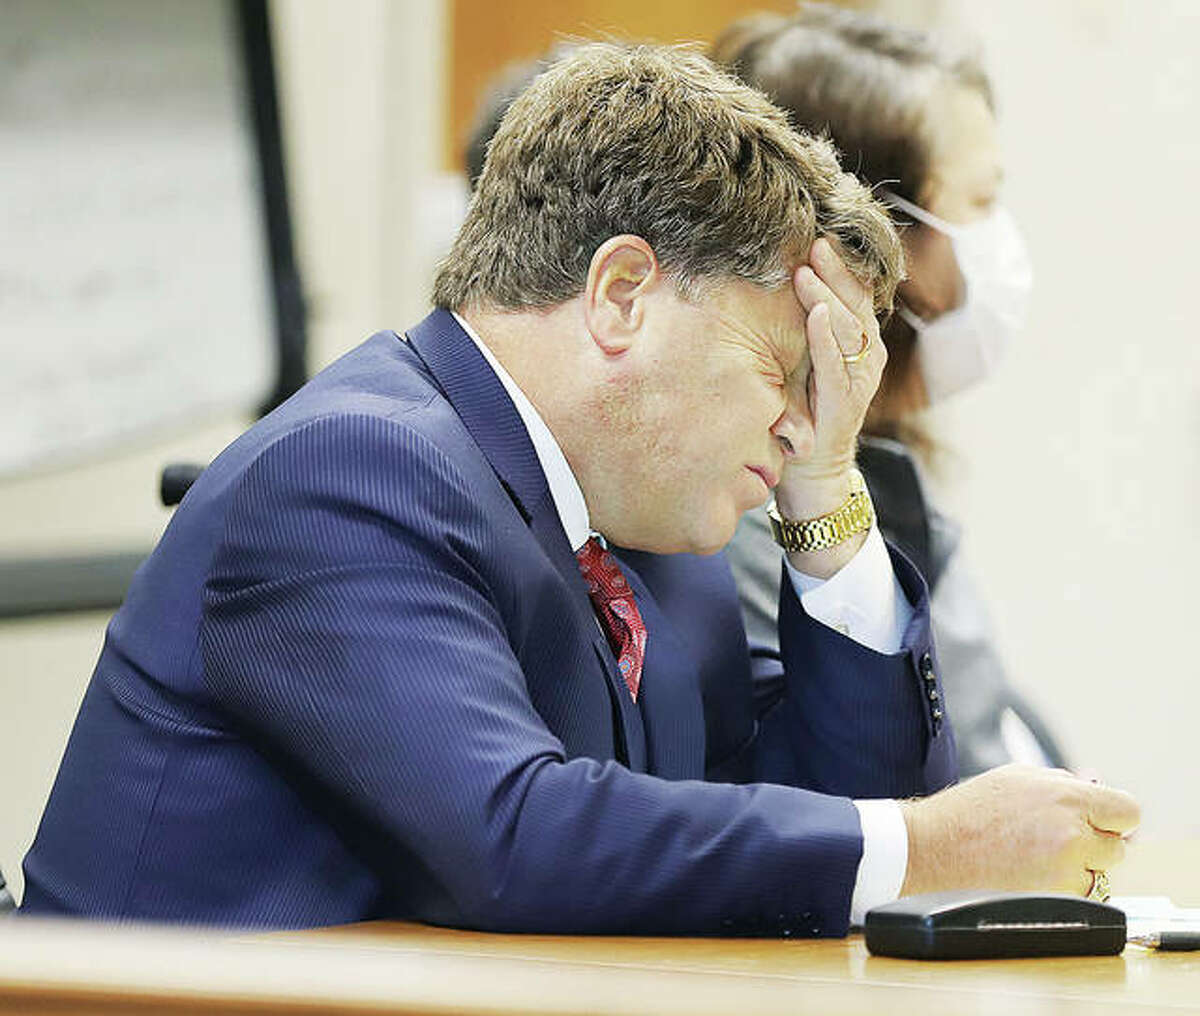 John Stobbs, one of the defense attorneys for Amber Hampshire, rubs his face as testimony at the sentencing hearing dragged on through the noon hour Tuesday.